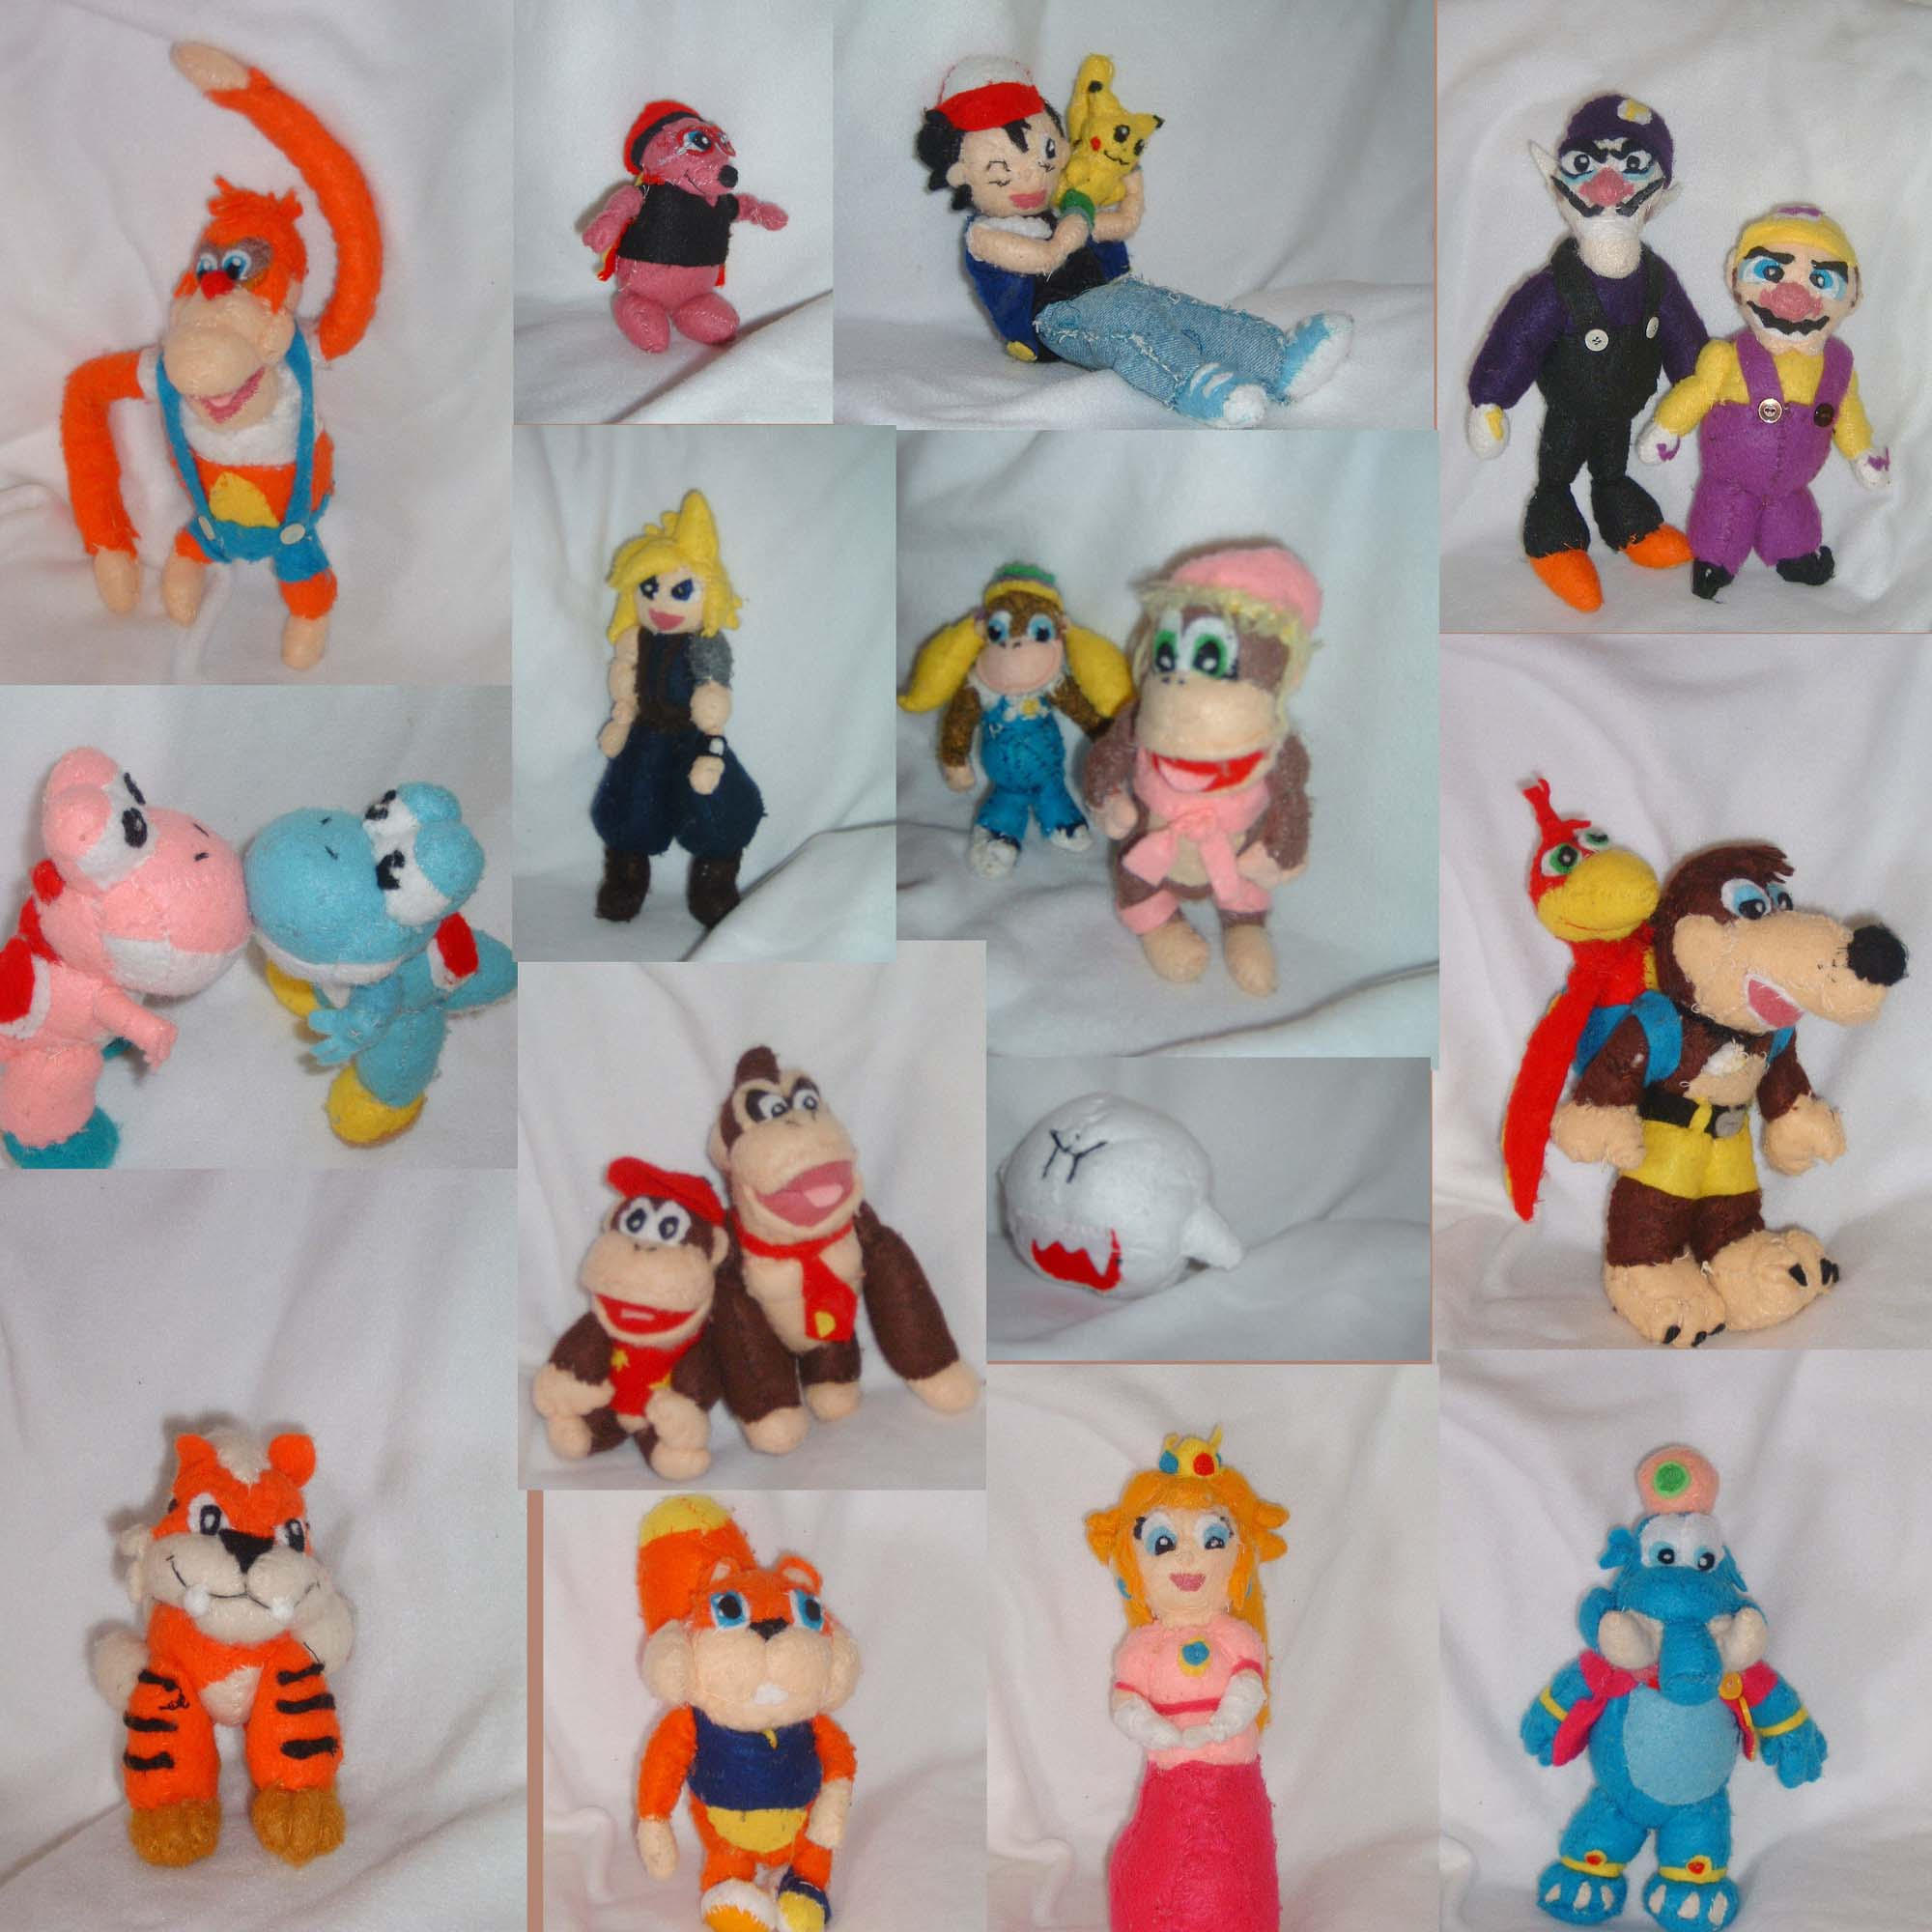 plush doll mosaic '99-'01 by intrepidThrough on DeviantArt